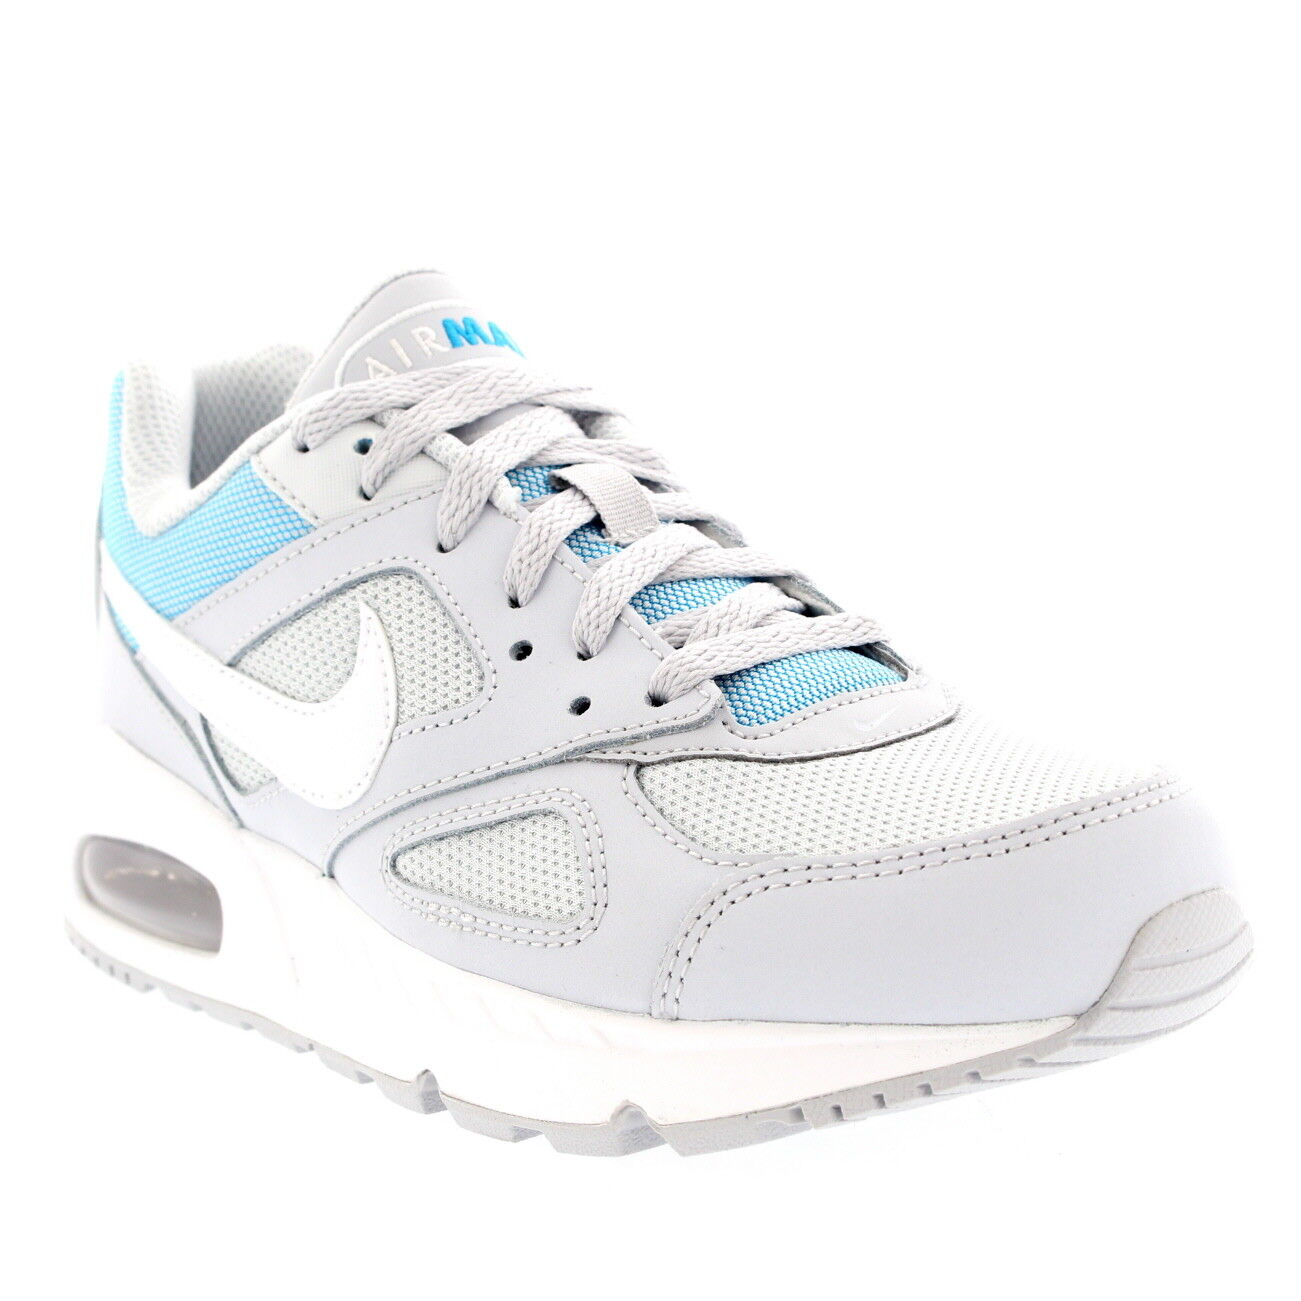 WOMEN'S NIKE AIR MAX IVO RUNNING TRAINING SHOES SNEAKERS NEW 110  014